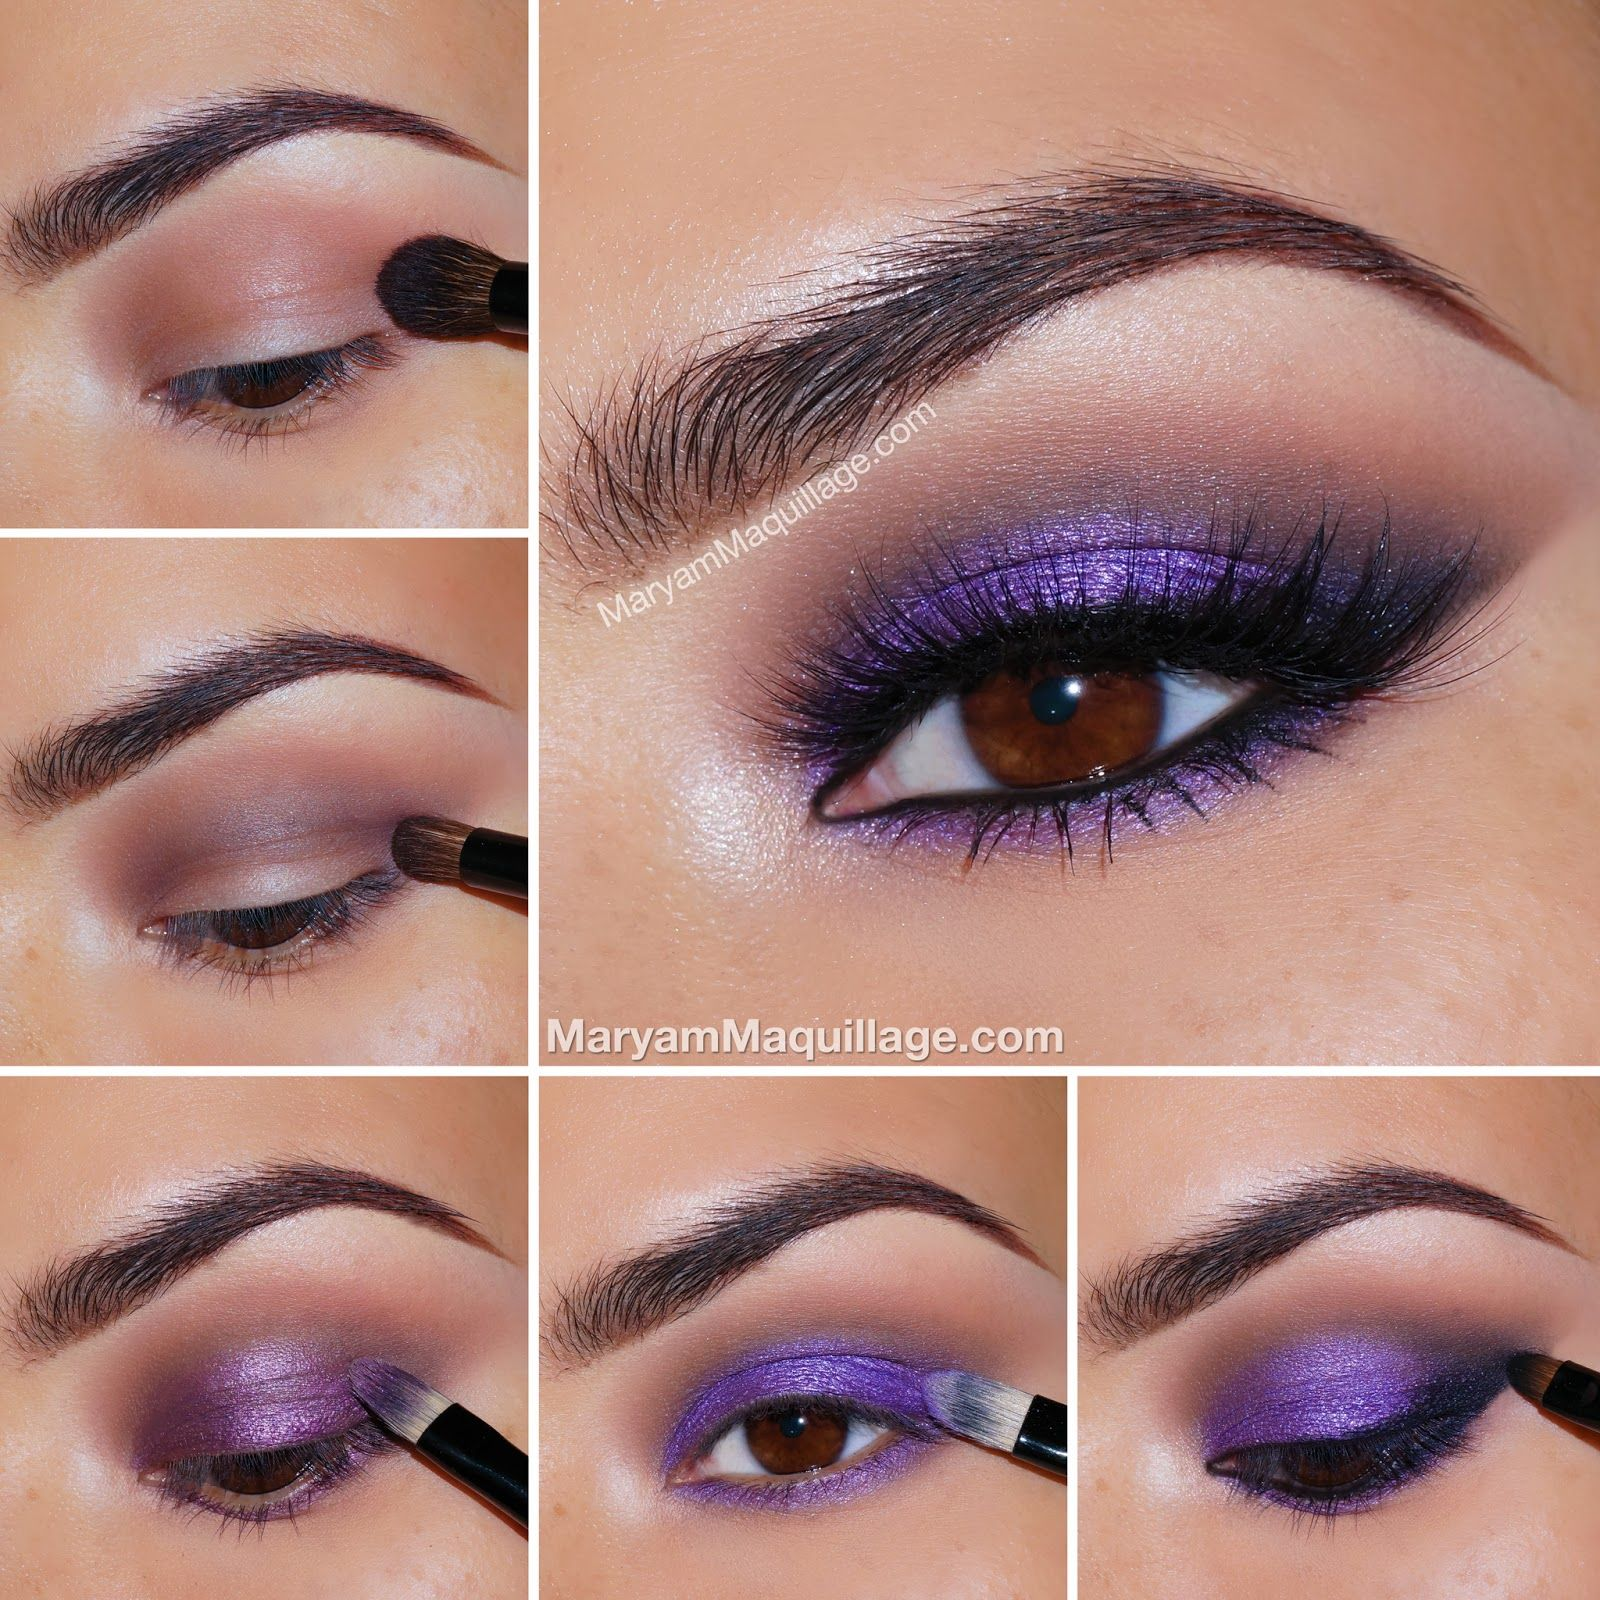 Brown Eyes Can Support A Range Of Bold Colors Don T Be Afraid To Experiment Stick With Jewel At First